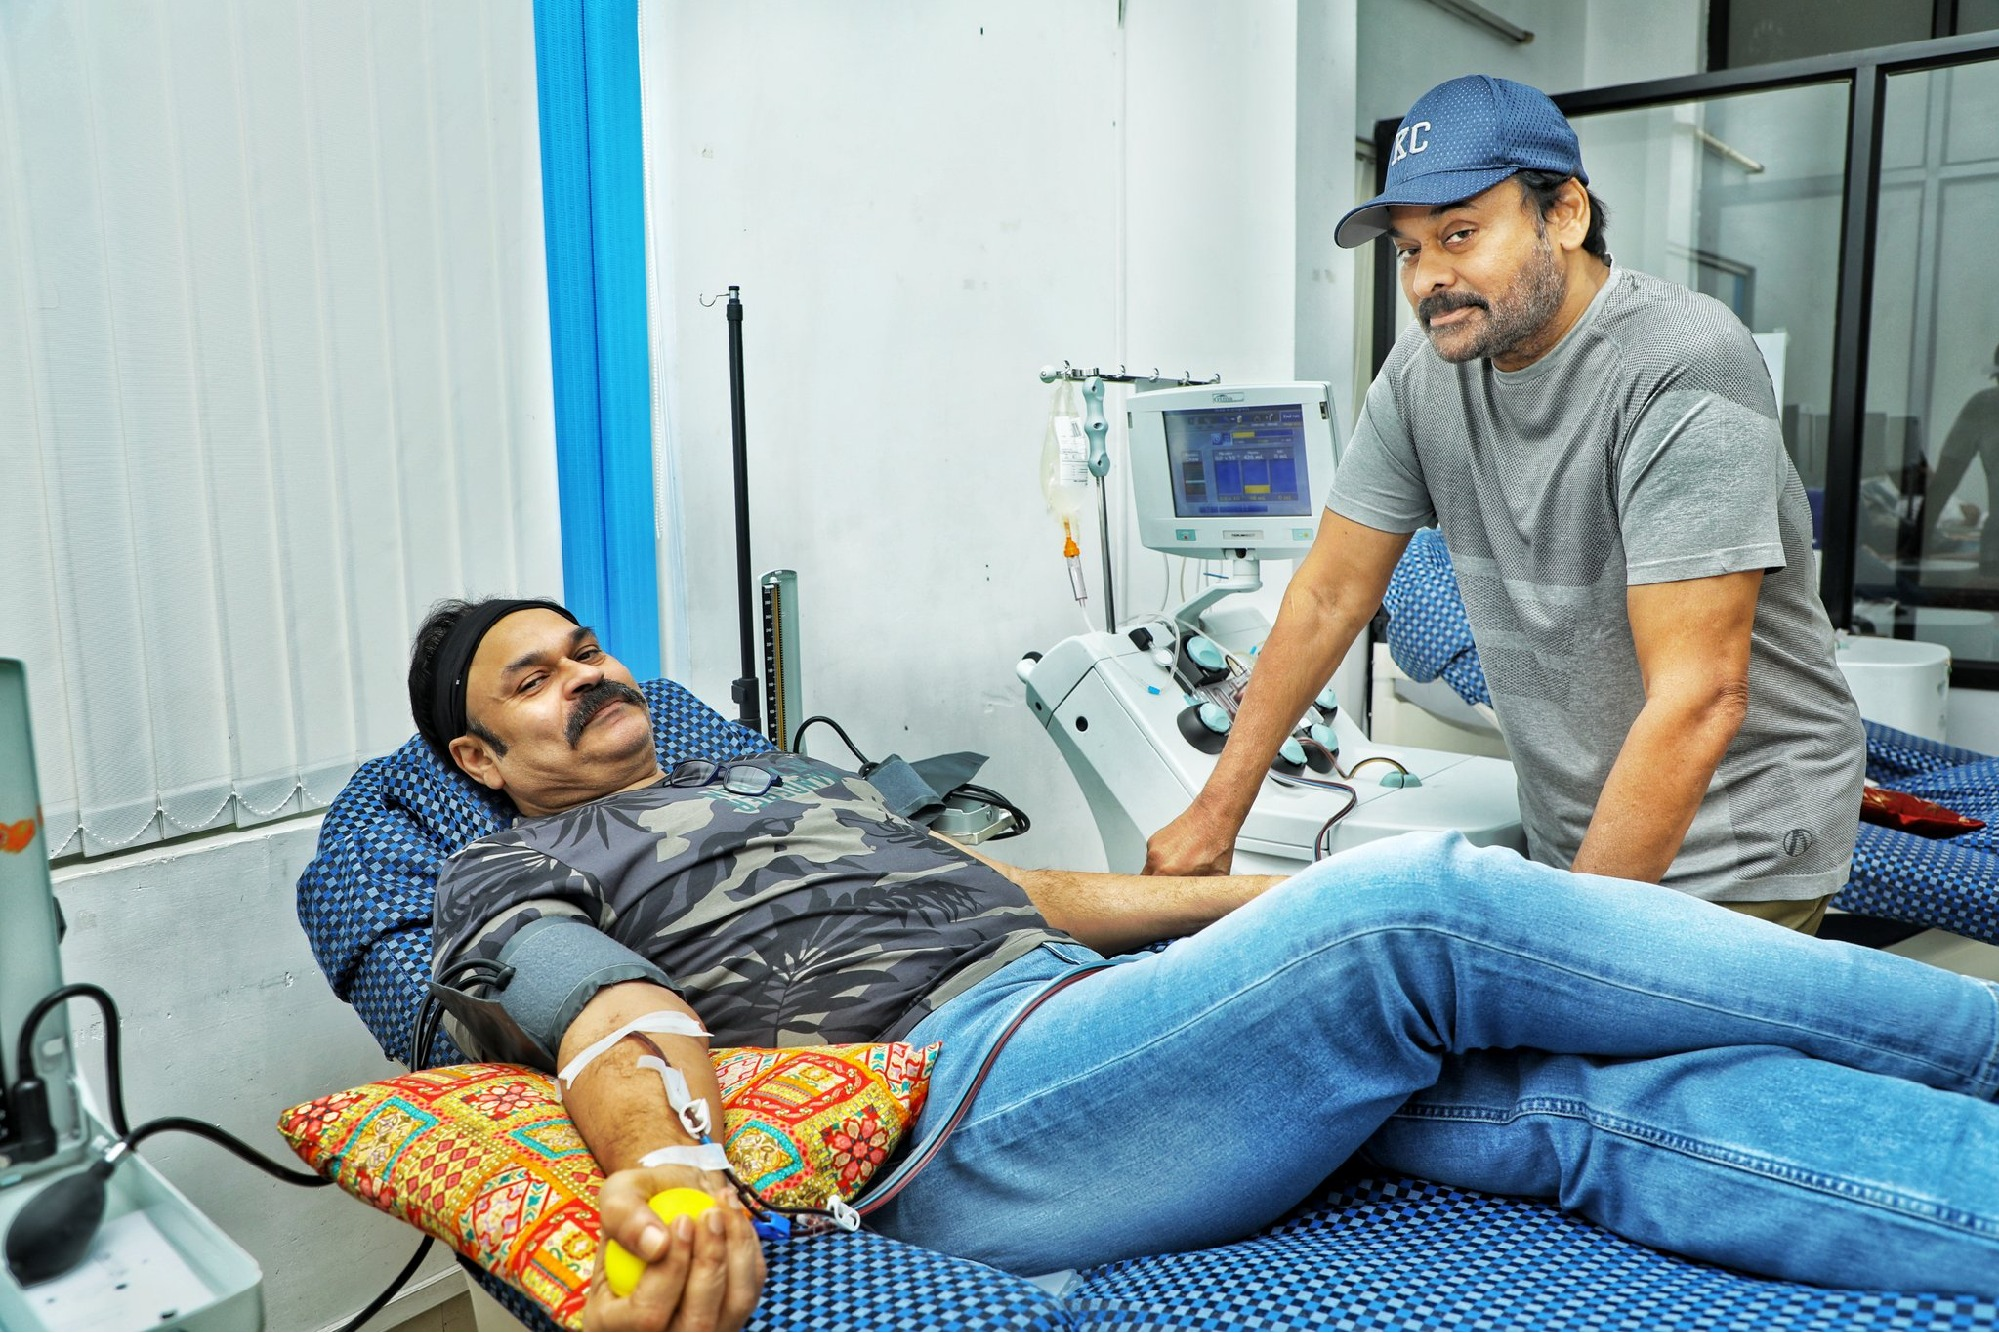 Megastar Chiranjeevi surprised his brother Nagababu